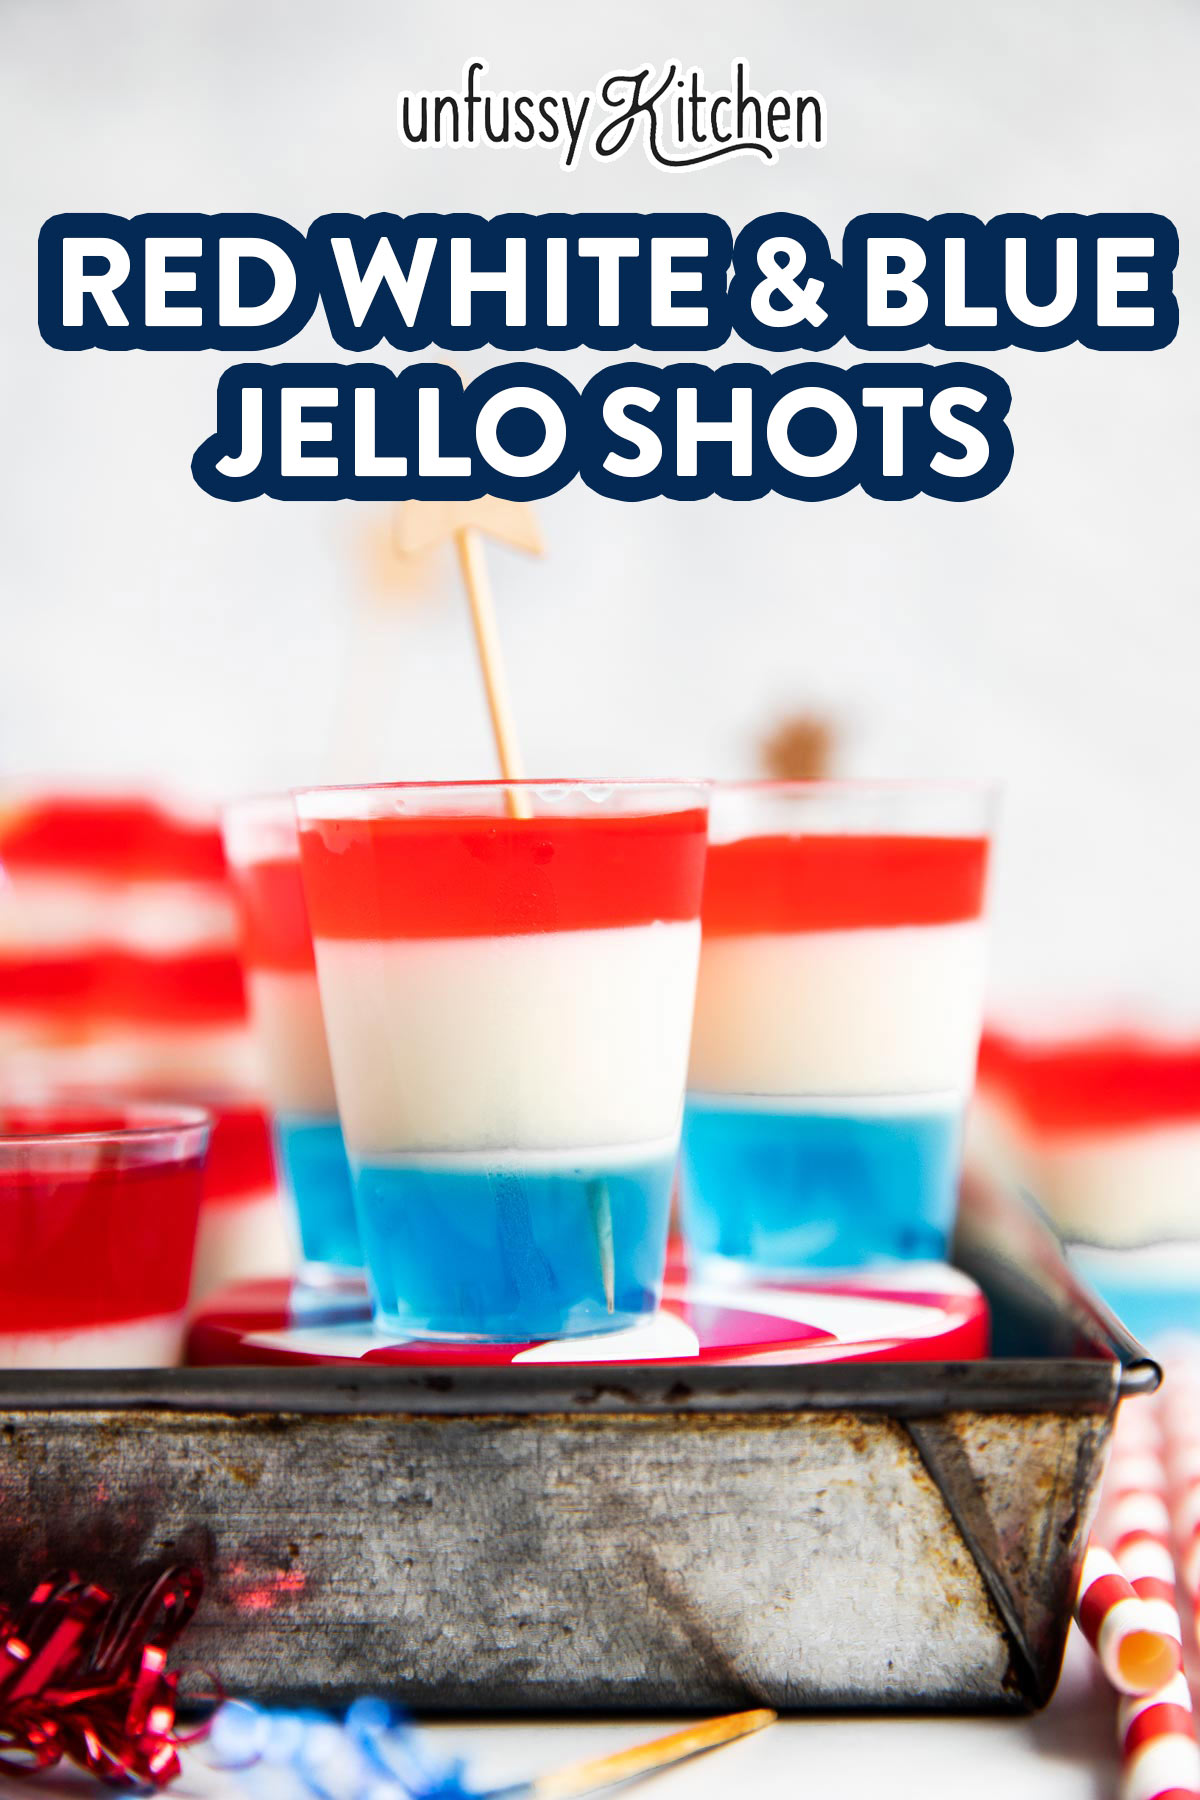 photo of jello shots with text overlay